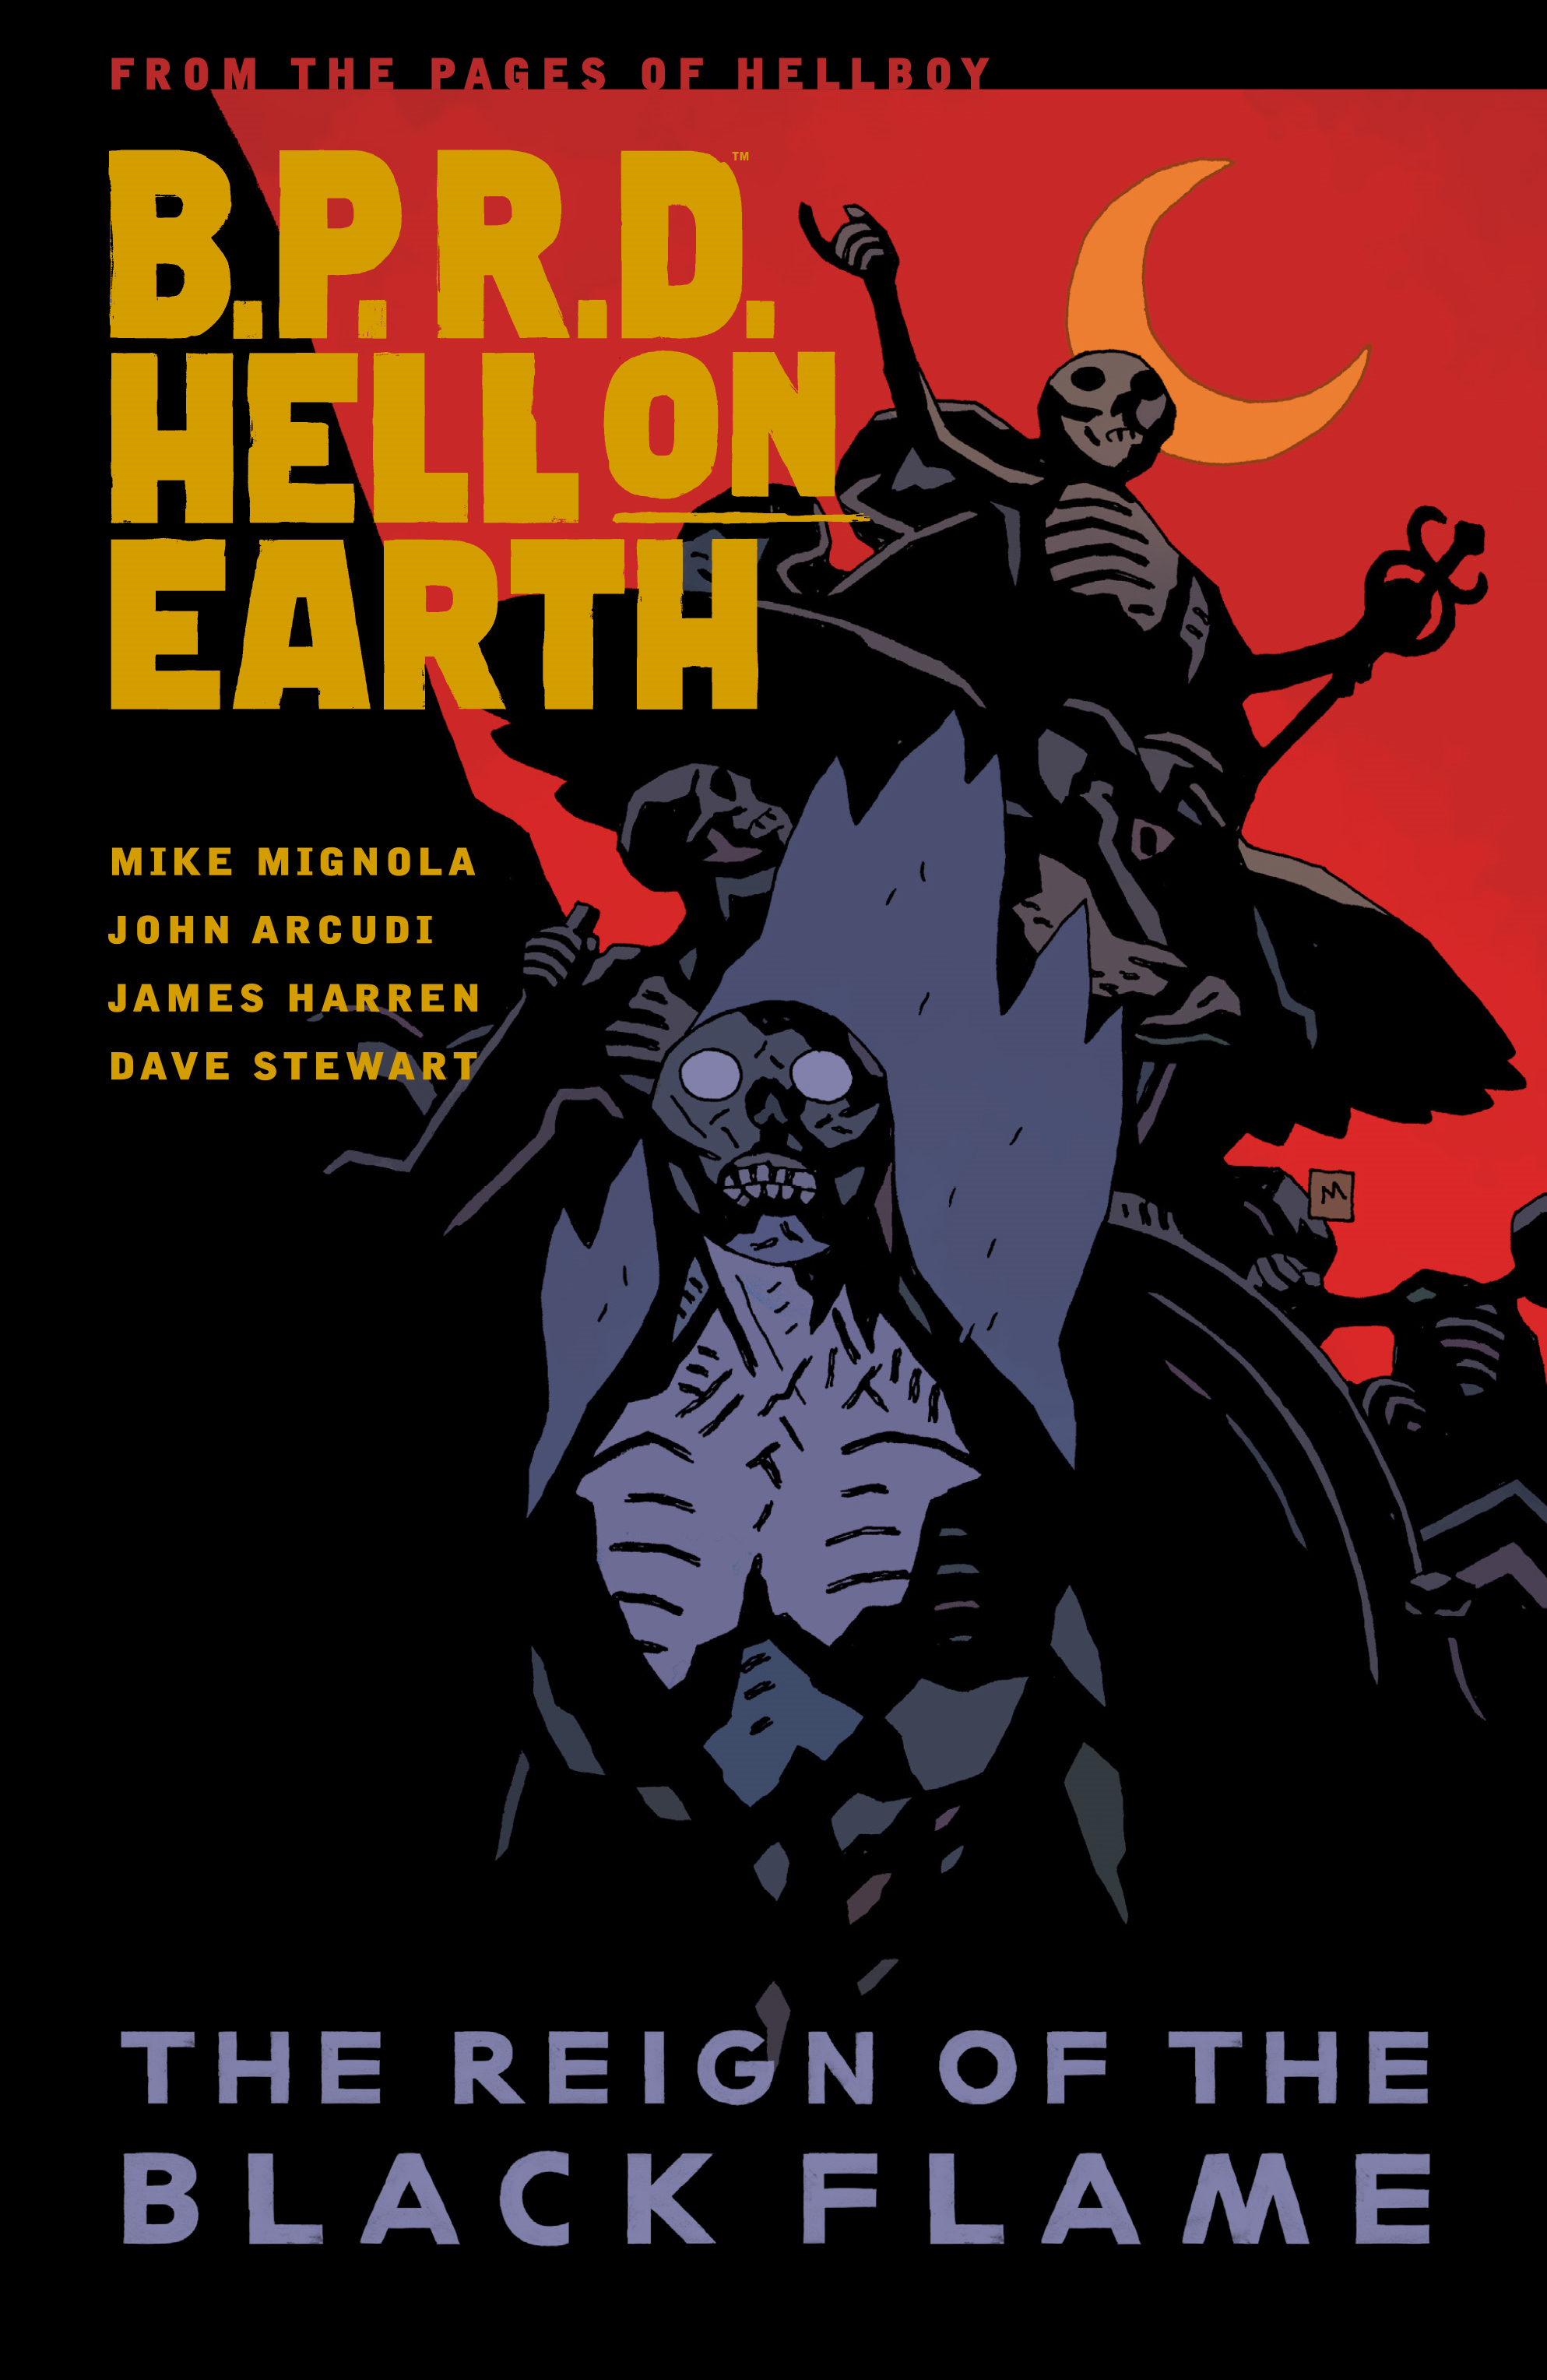 B.P.R.D. Hell on Earth Volume 9: The Reign of the Black Flame